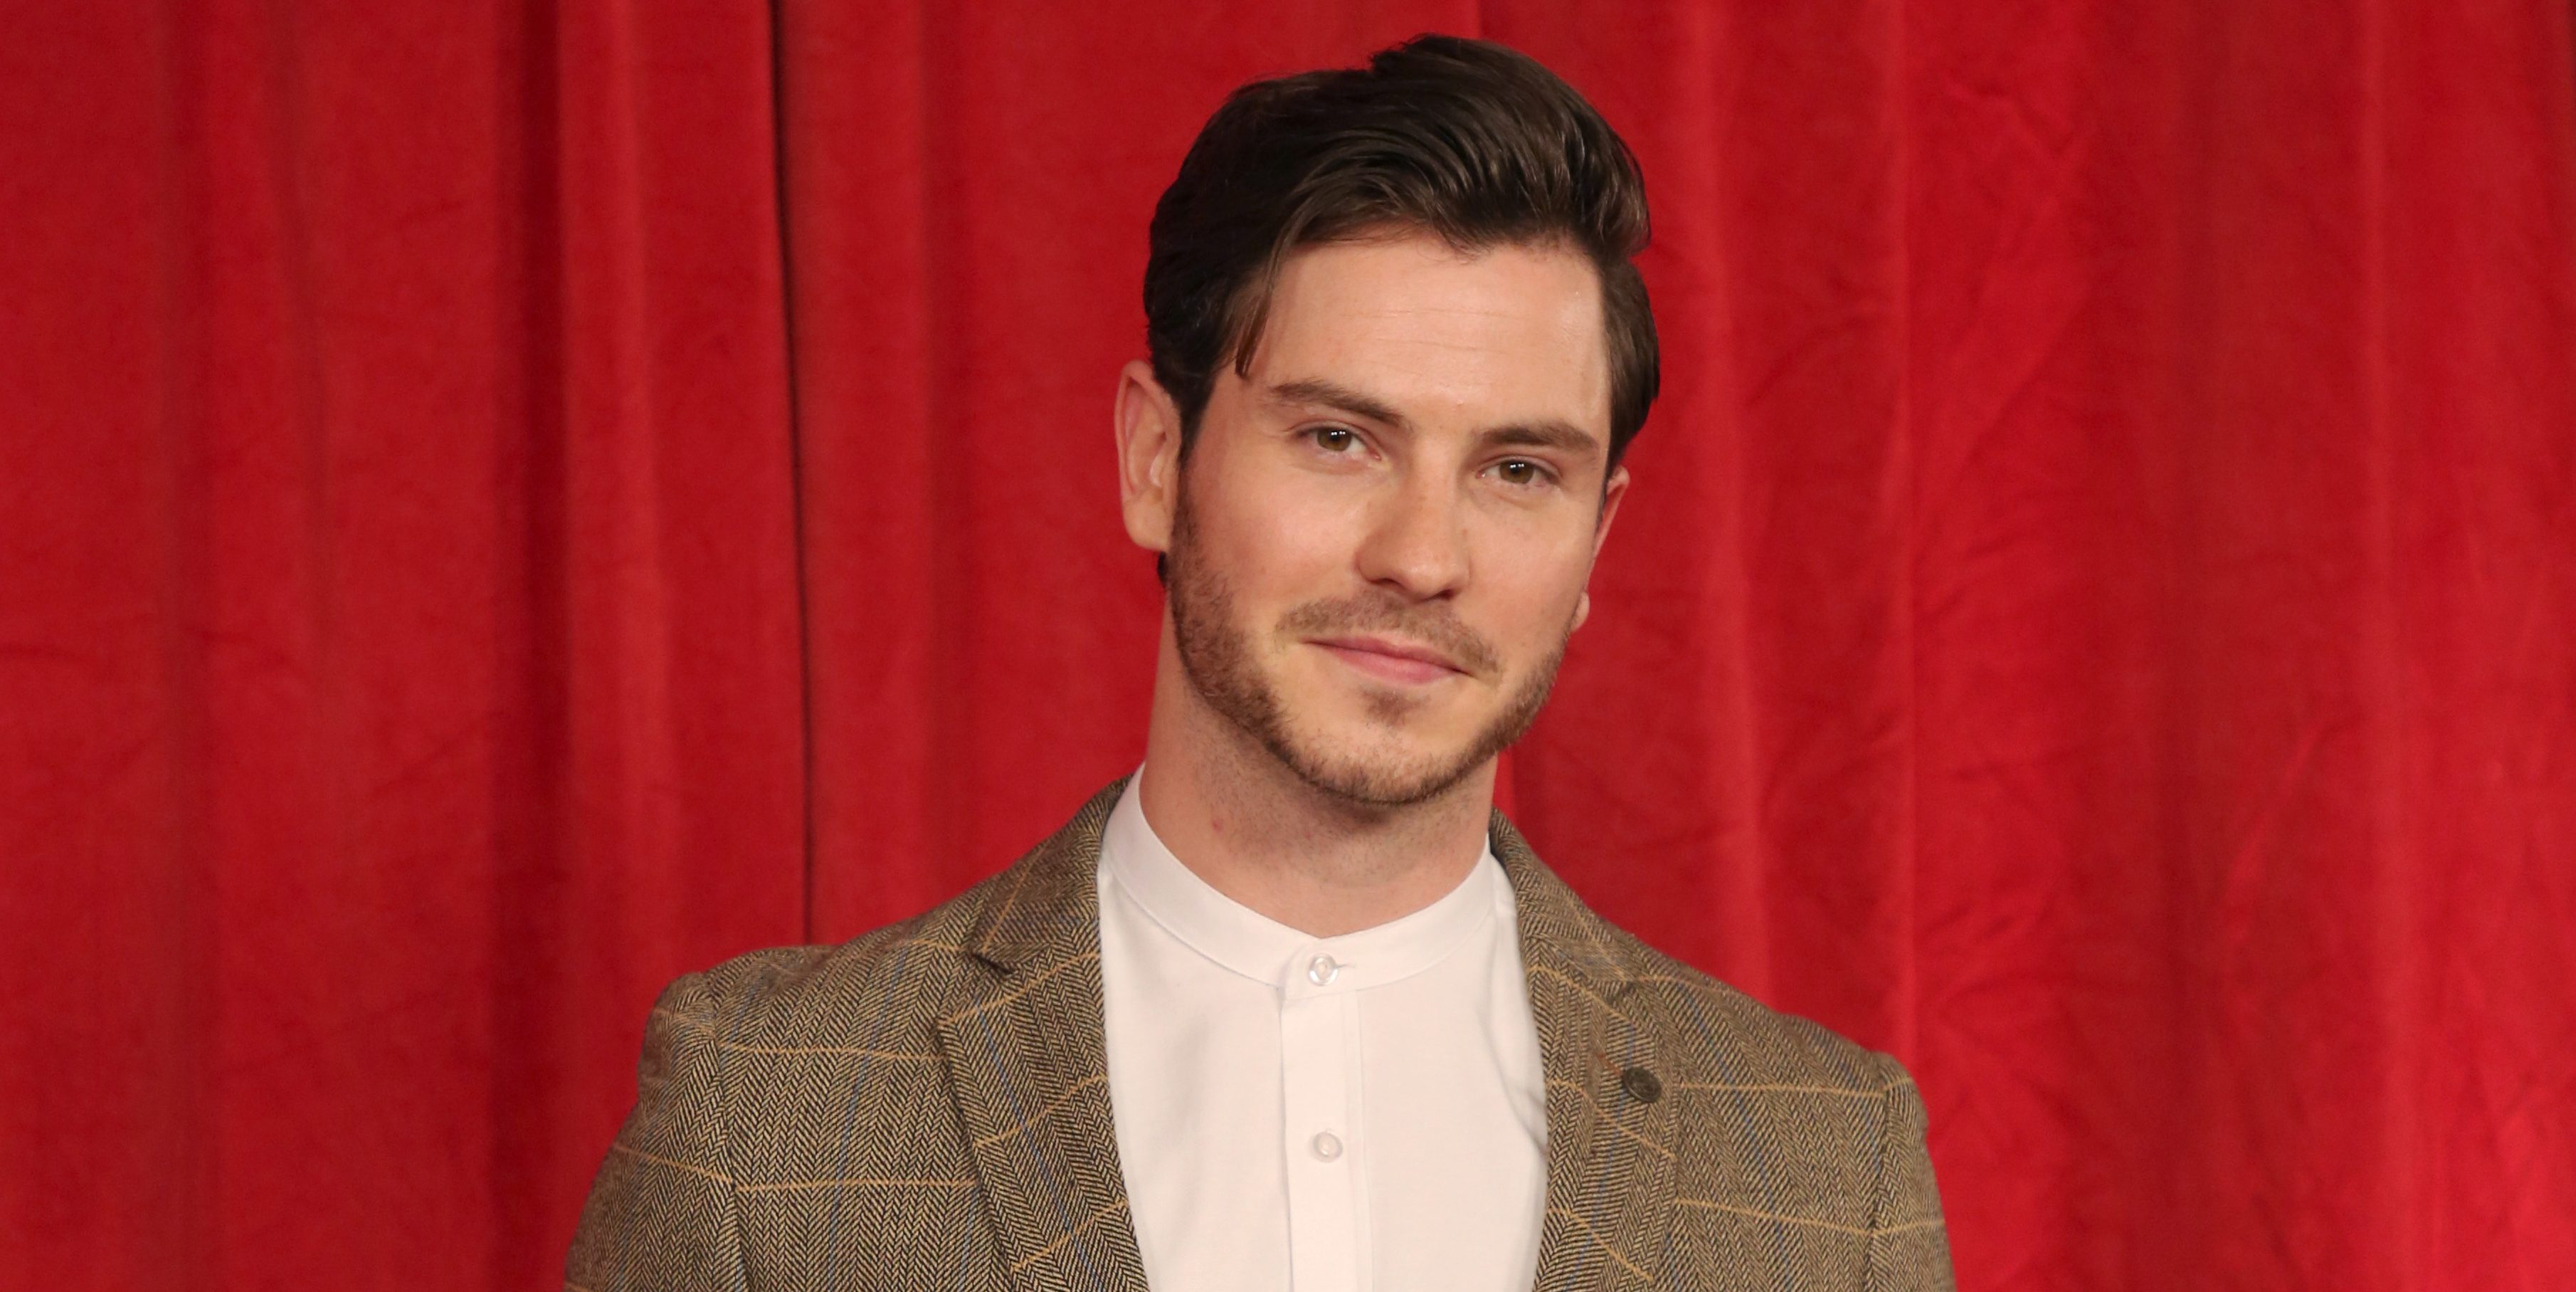 EastEnders' Toby-Alexander Smith shows off abs in topless photo